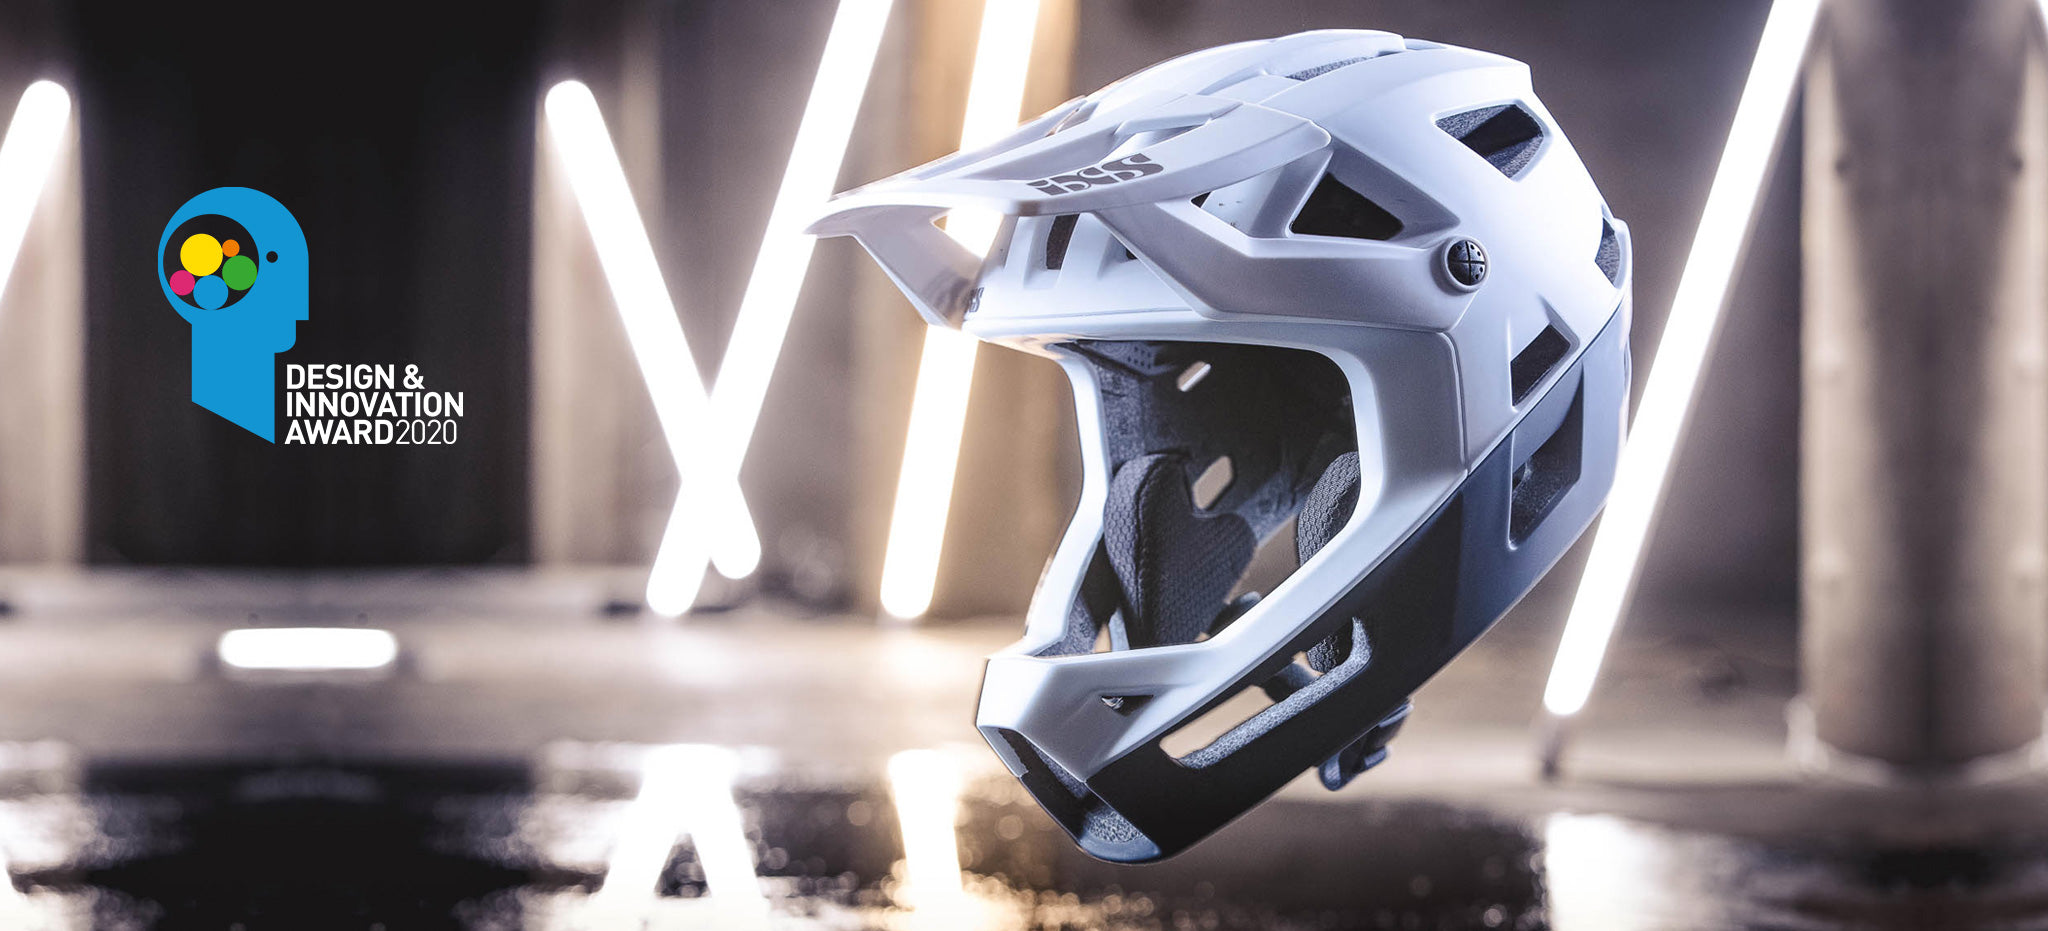 iXS Trigger FF Helmet Recognized with Design Awards and Accolades